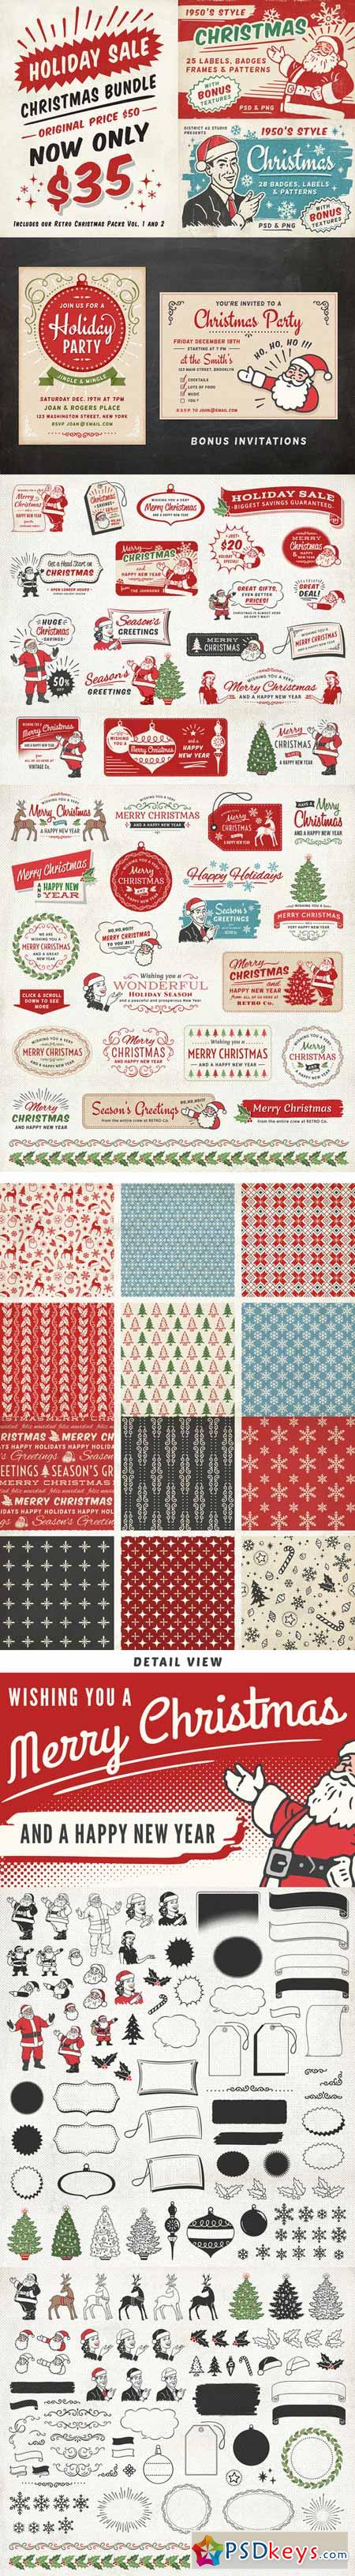 Retro Christmas Bundle 455442